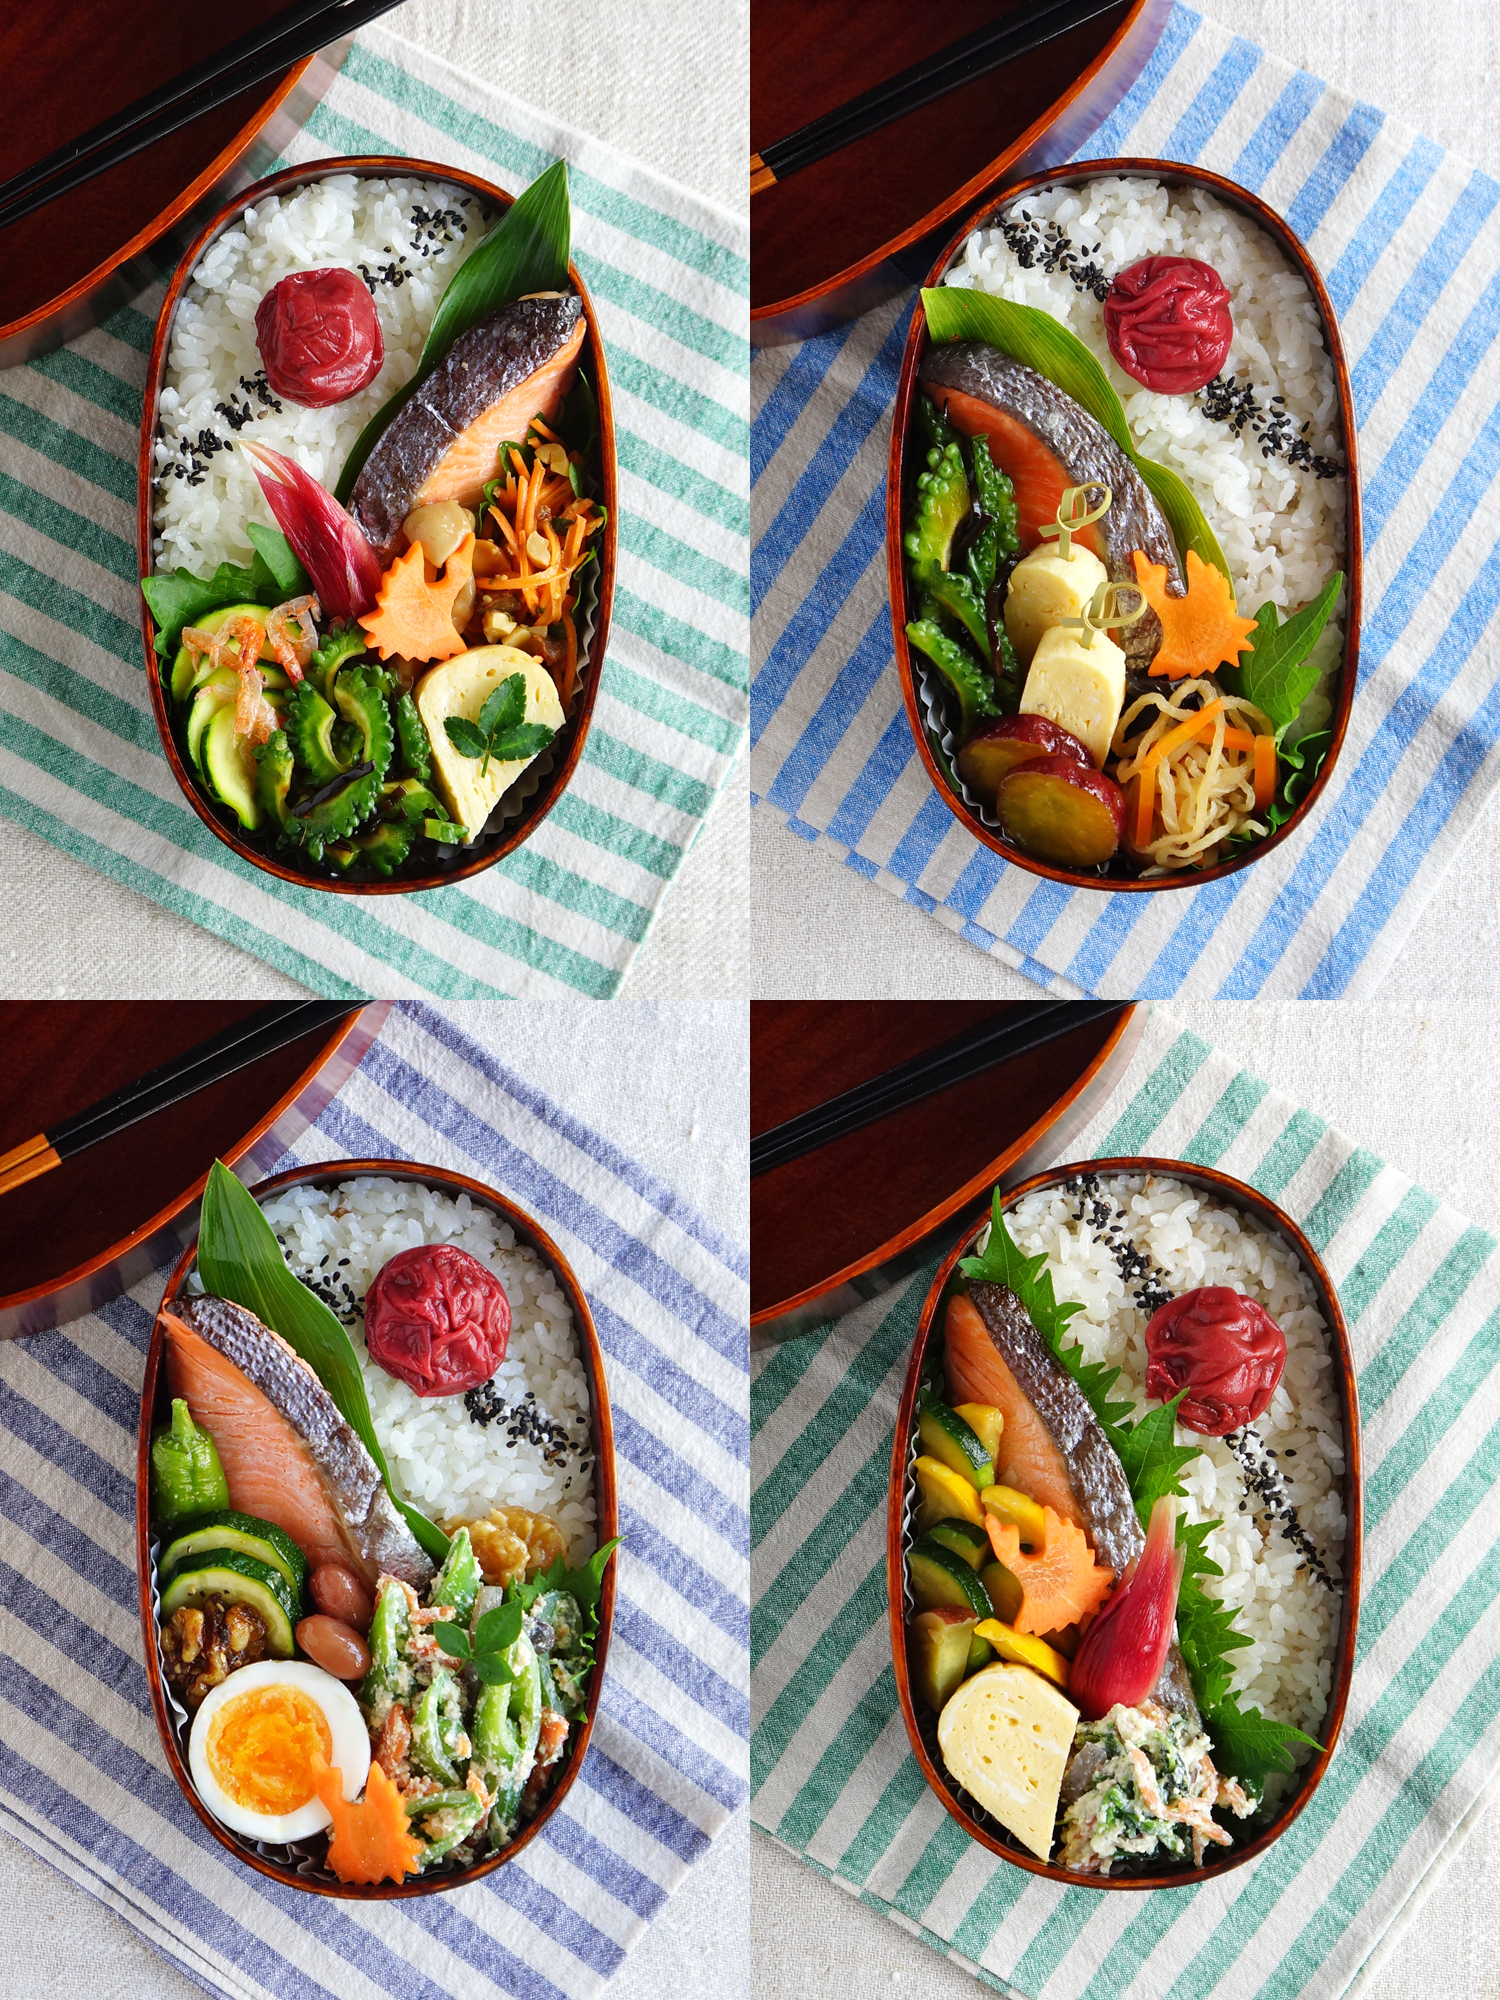 My favorite Grilled salted salmon bento